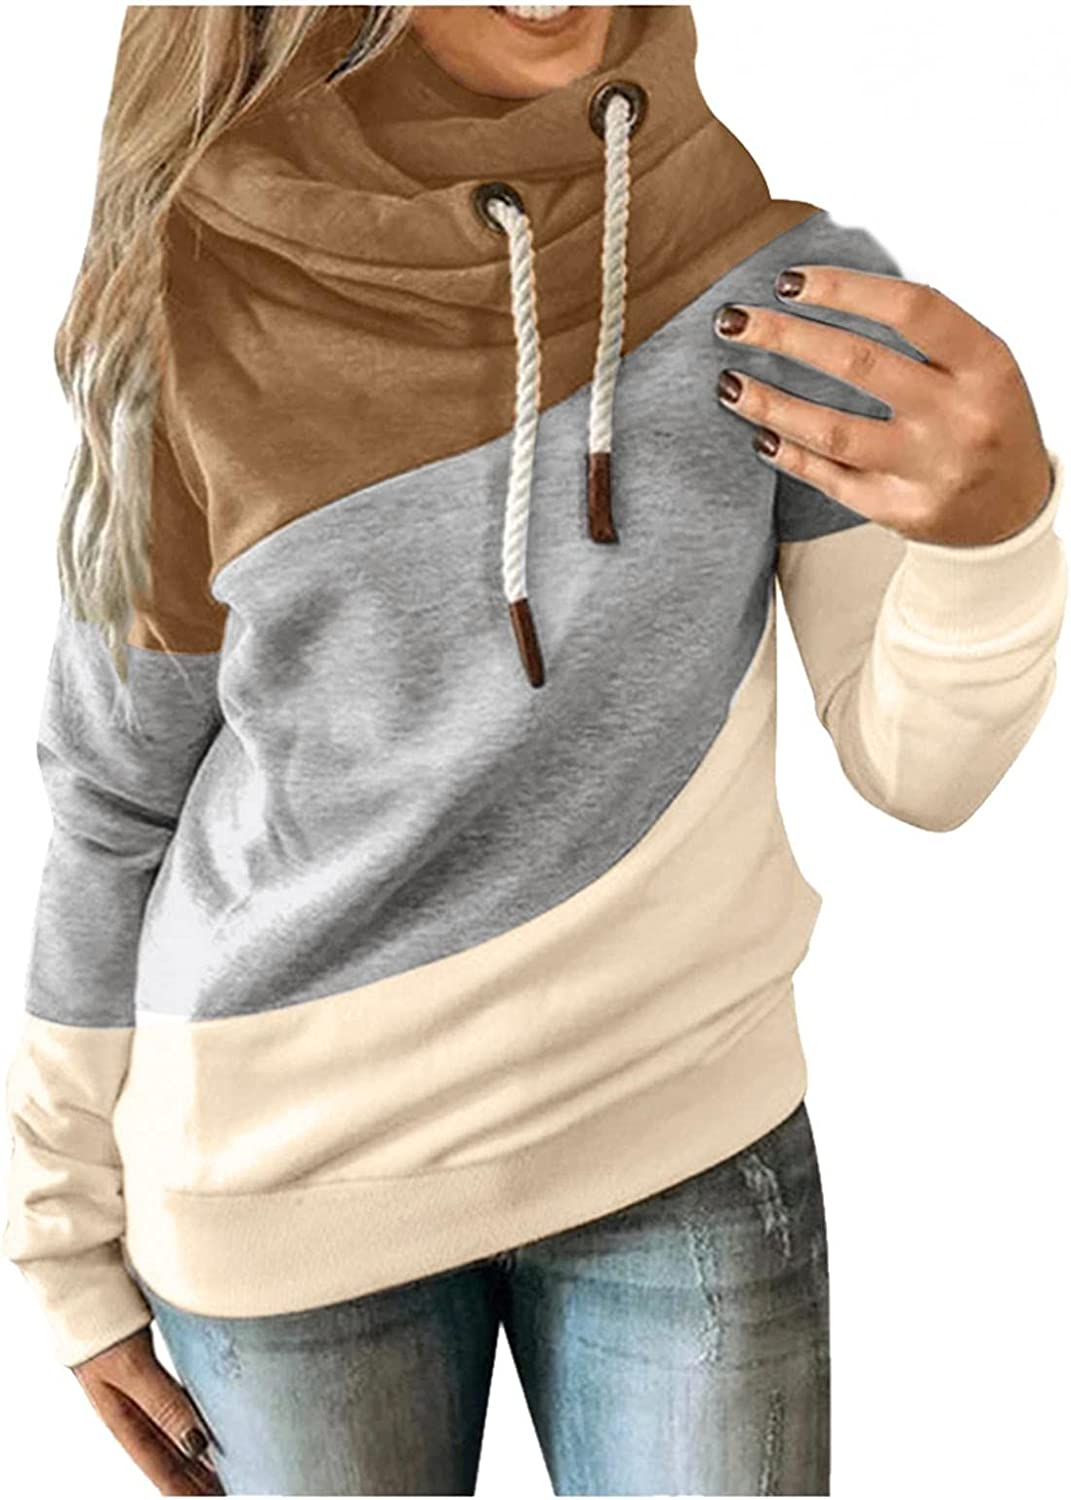 National uniform free shipping TOWMUS Womens Hoodies Cowl Neck Tops Complete Free Shipping Sleeve Long Splice Pullover